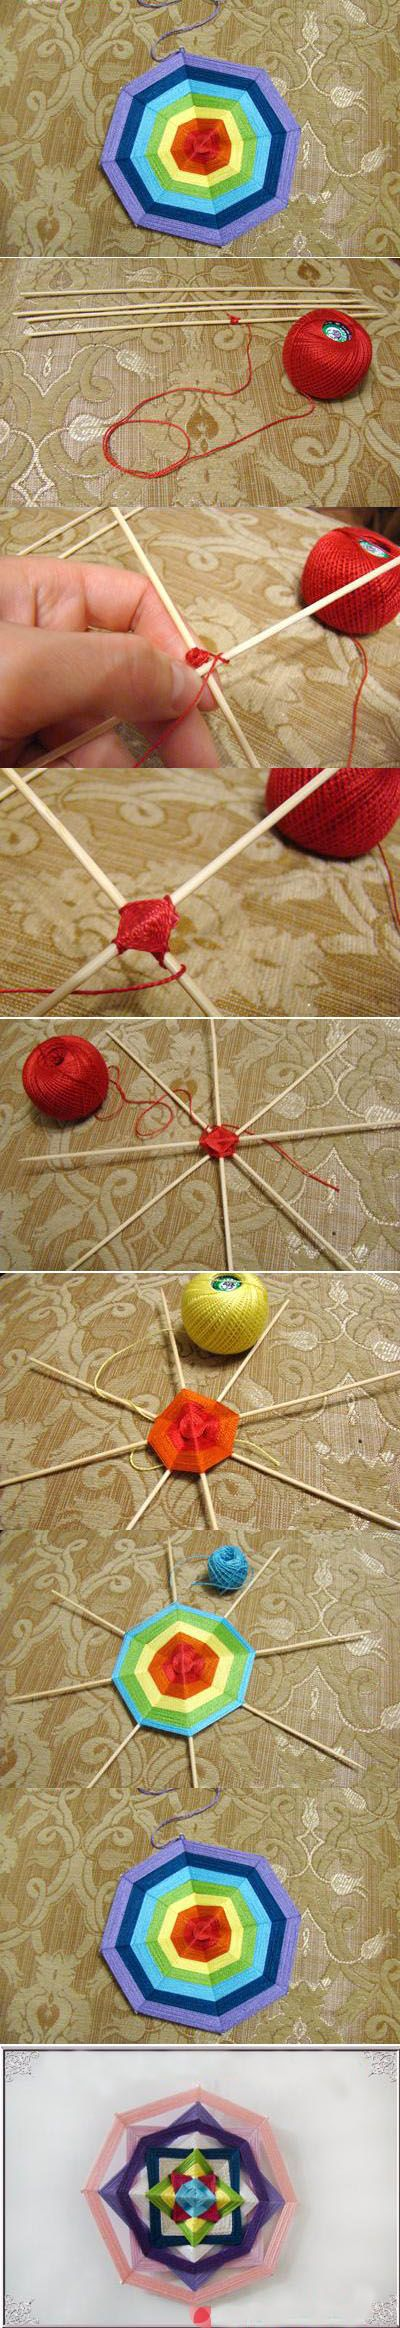 ojo de dios basic how to